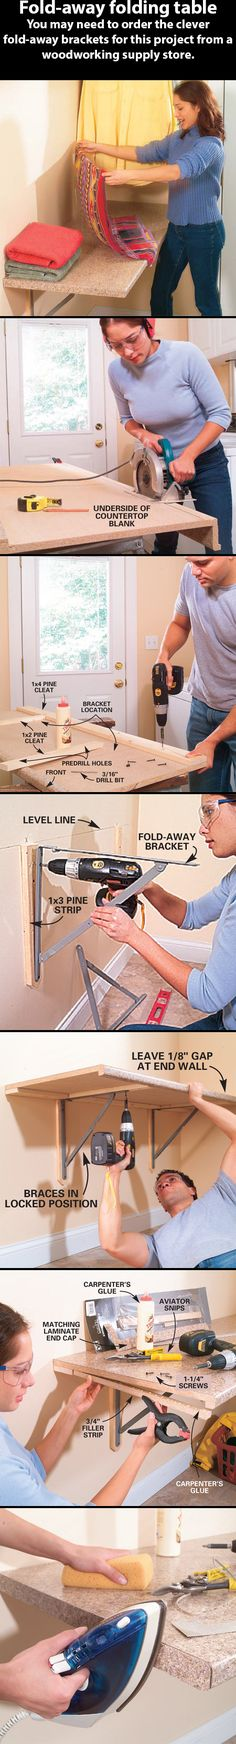 The family handyman  Fold-away folding table